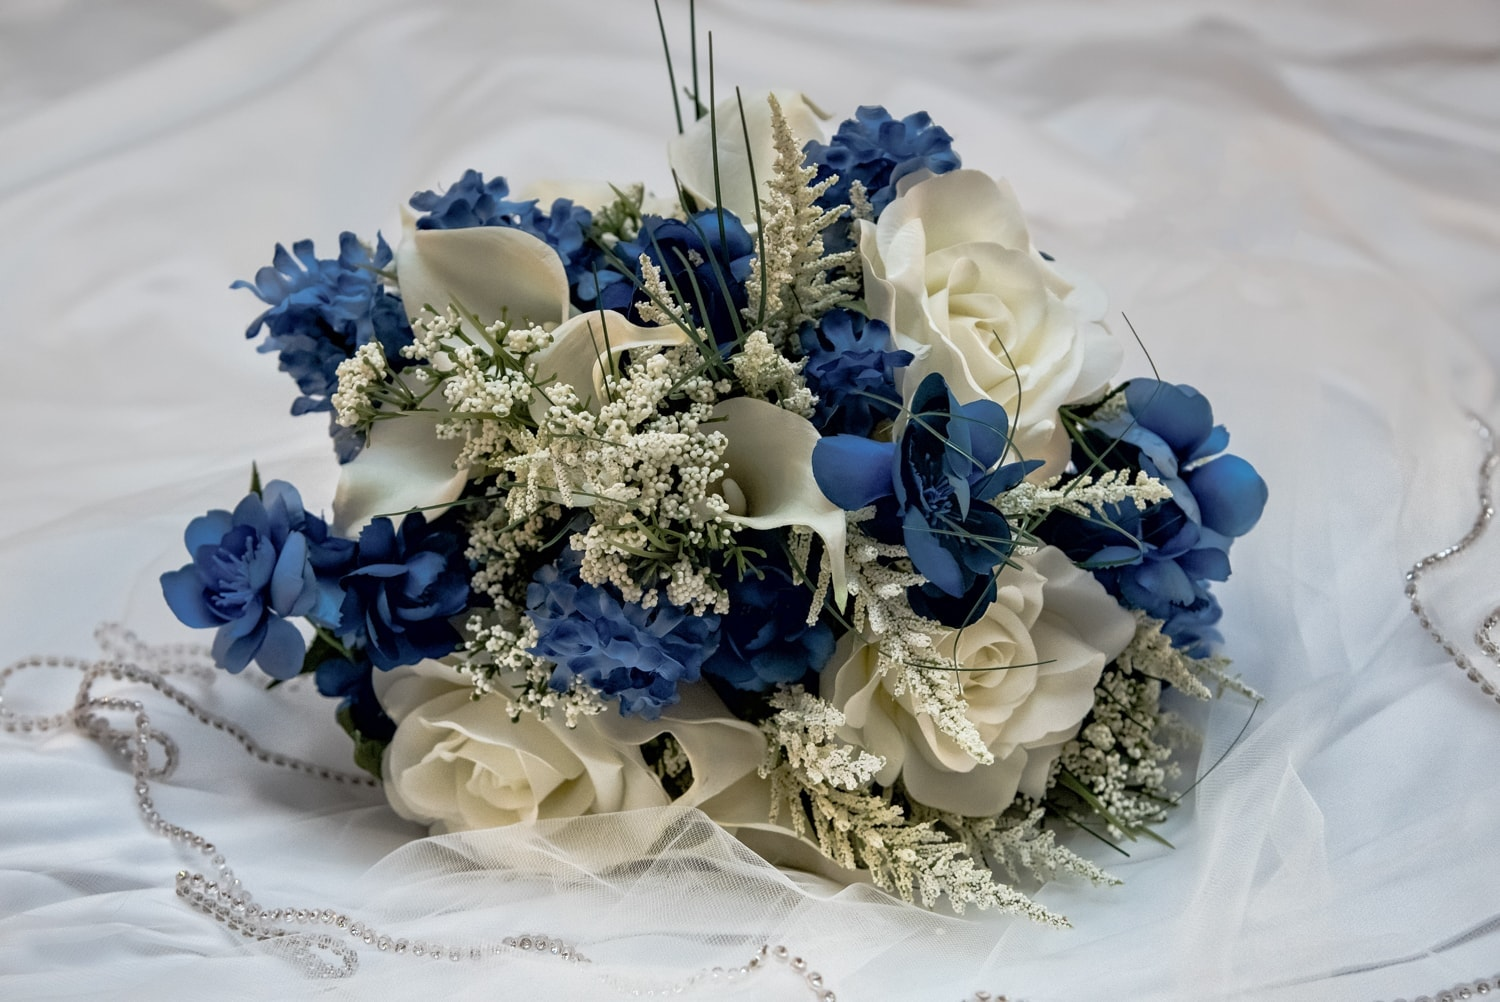 A silk fake flower wedding bridal bouquet in ivory and navy blue.